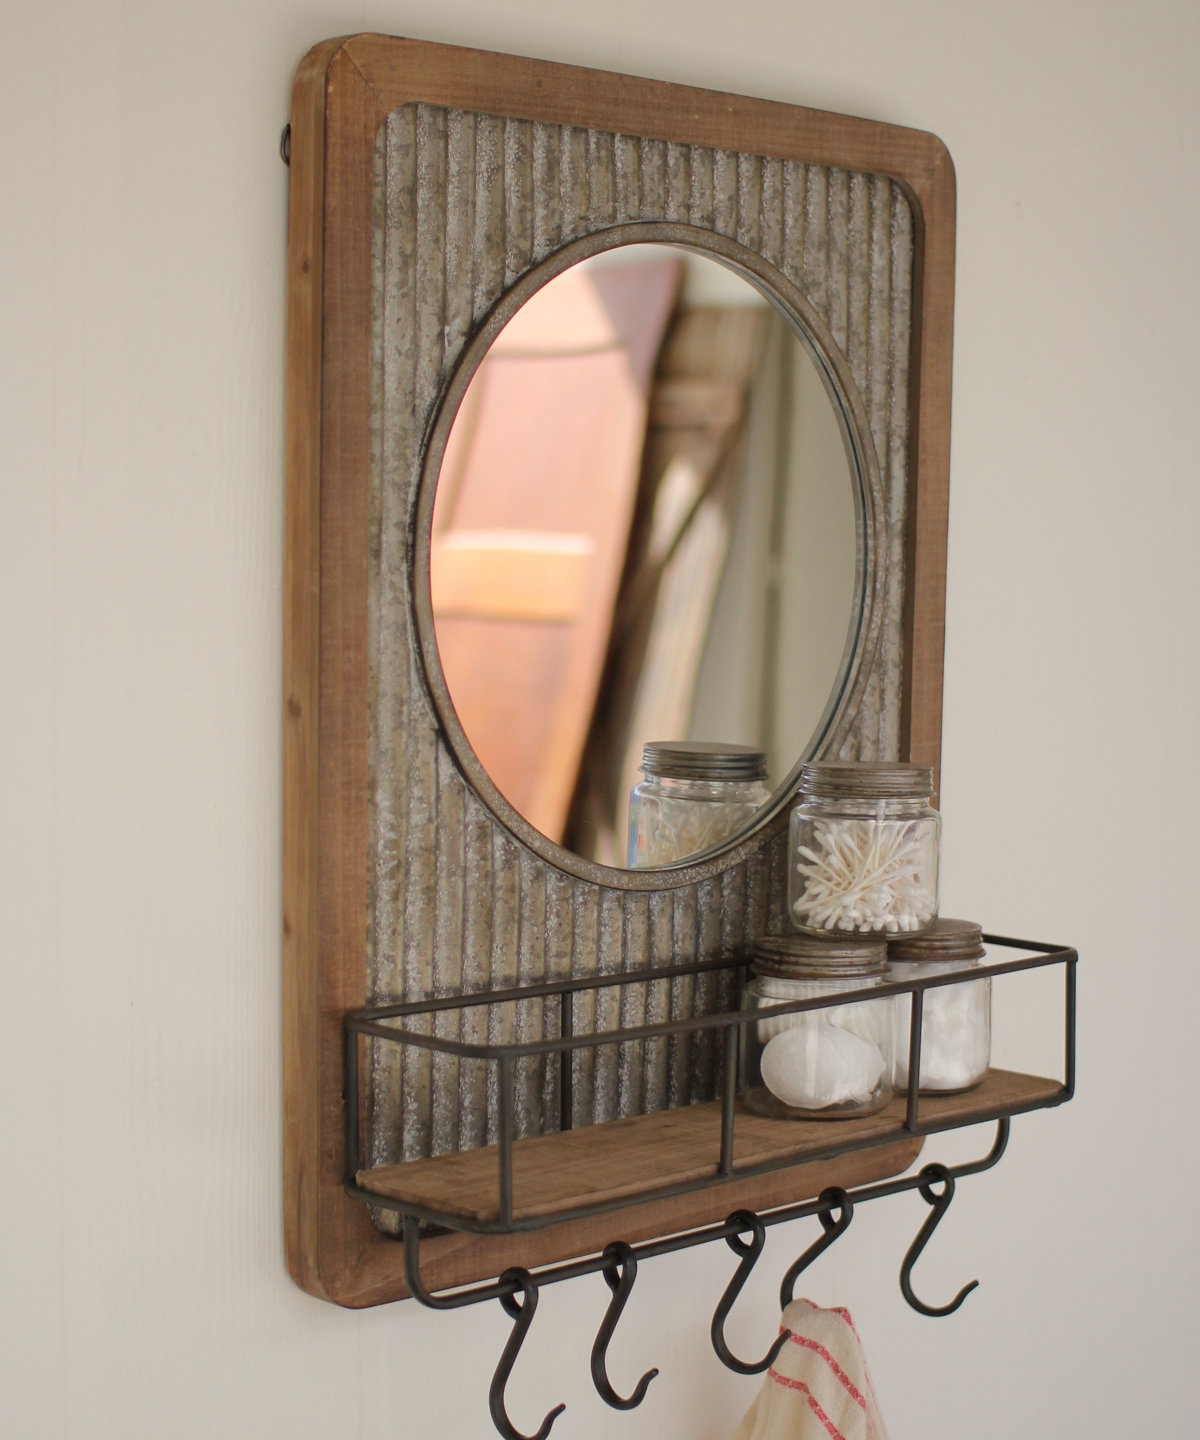 Hallas Wall Organizer Mirrors Pertaining To Most Current Adalheid Corrugated Wood Shelf Accent Mirror (Gallery 8 of 20)